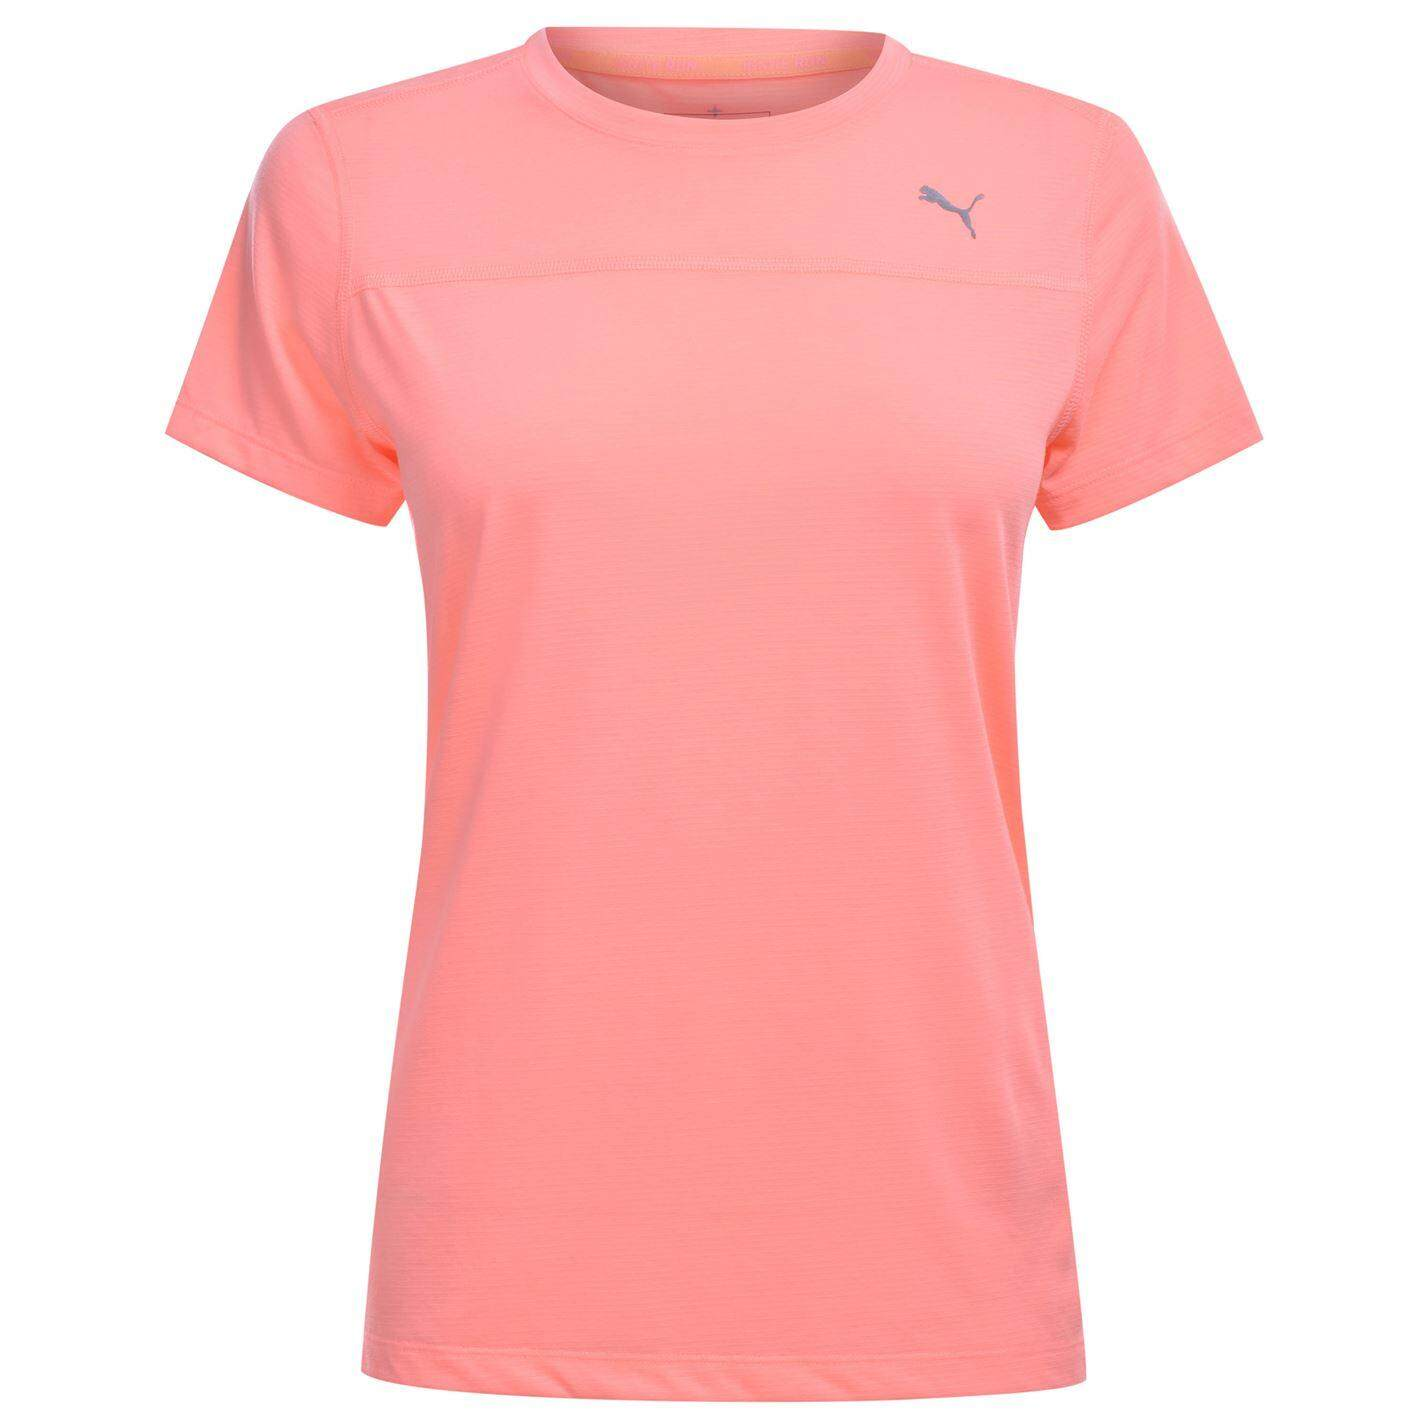 3481f926465c Women s Sport Shirts - Buy Women s Sport Shirts at Best Price in ...